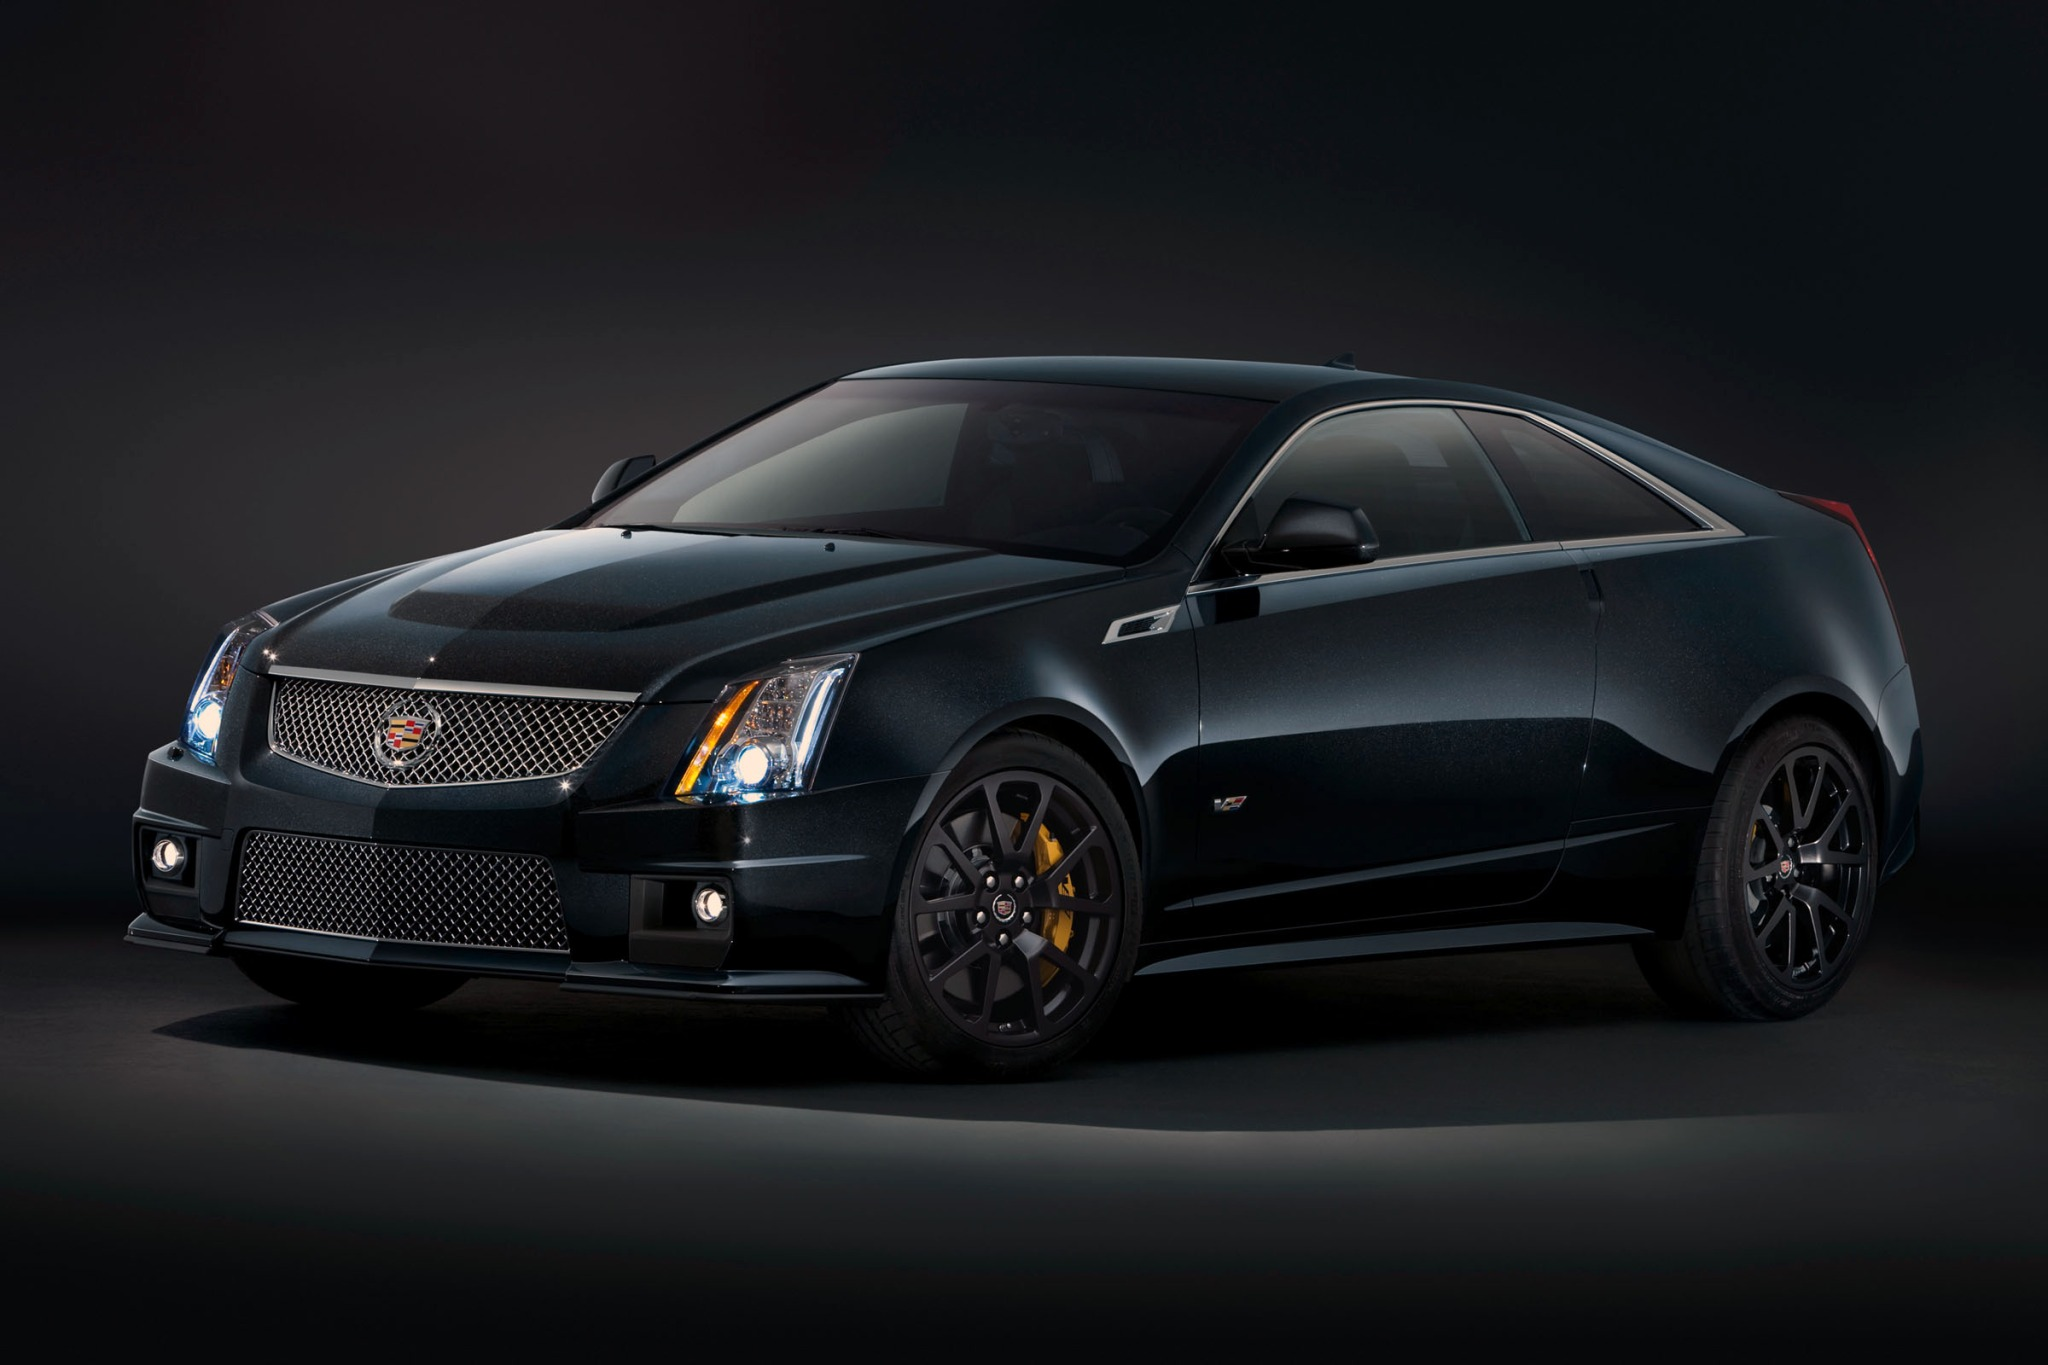 2013 cadillac cts v coupe coupe base fq oem 1 2048